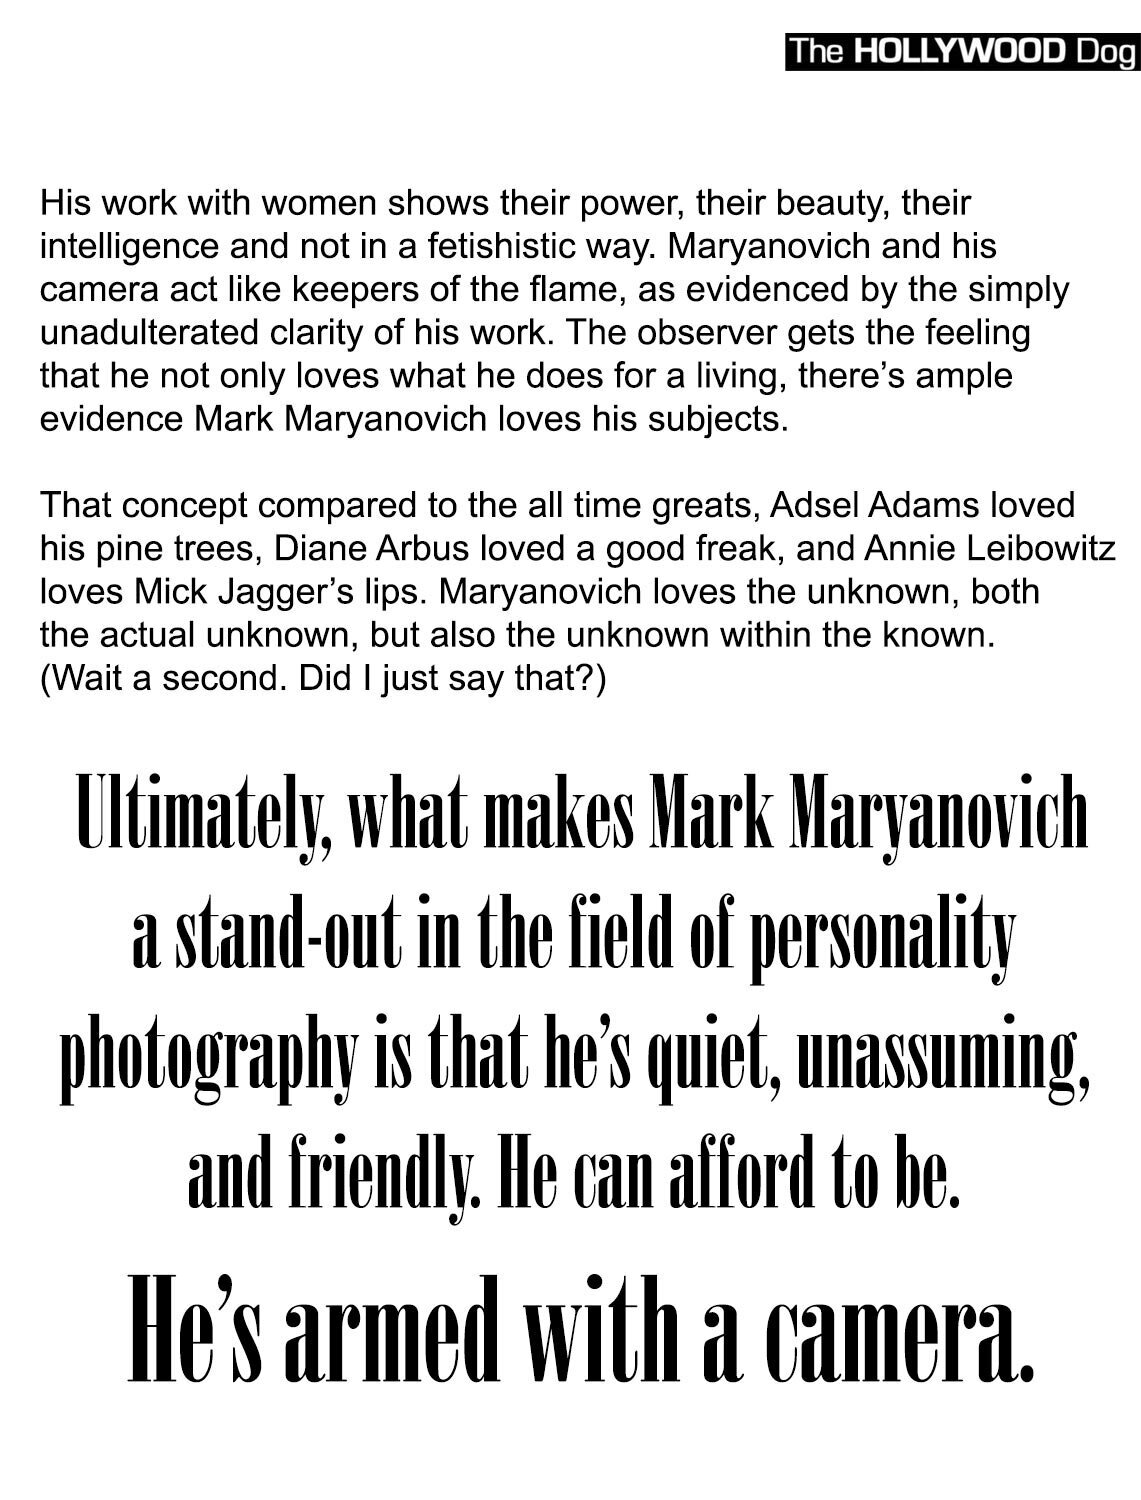 Magazine article featuring Mark Maryanovich publication The Hollywood Dog black text on white page 10